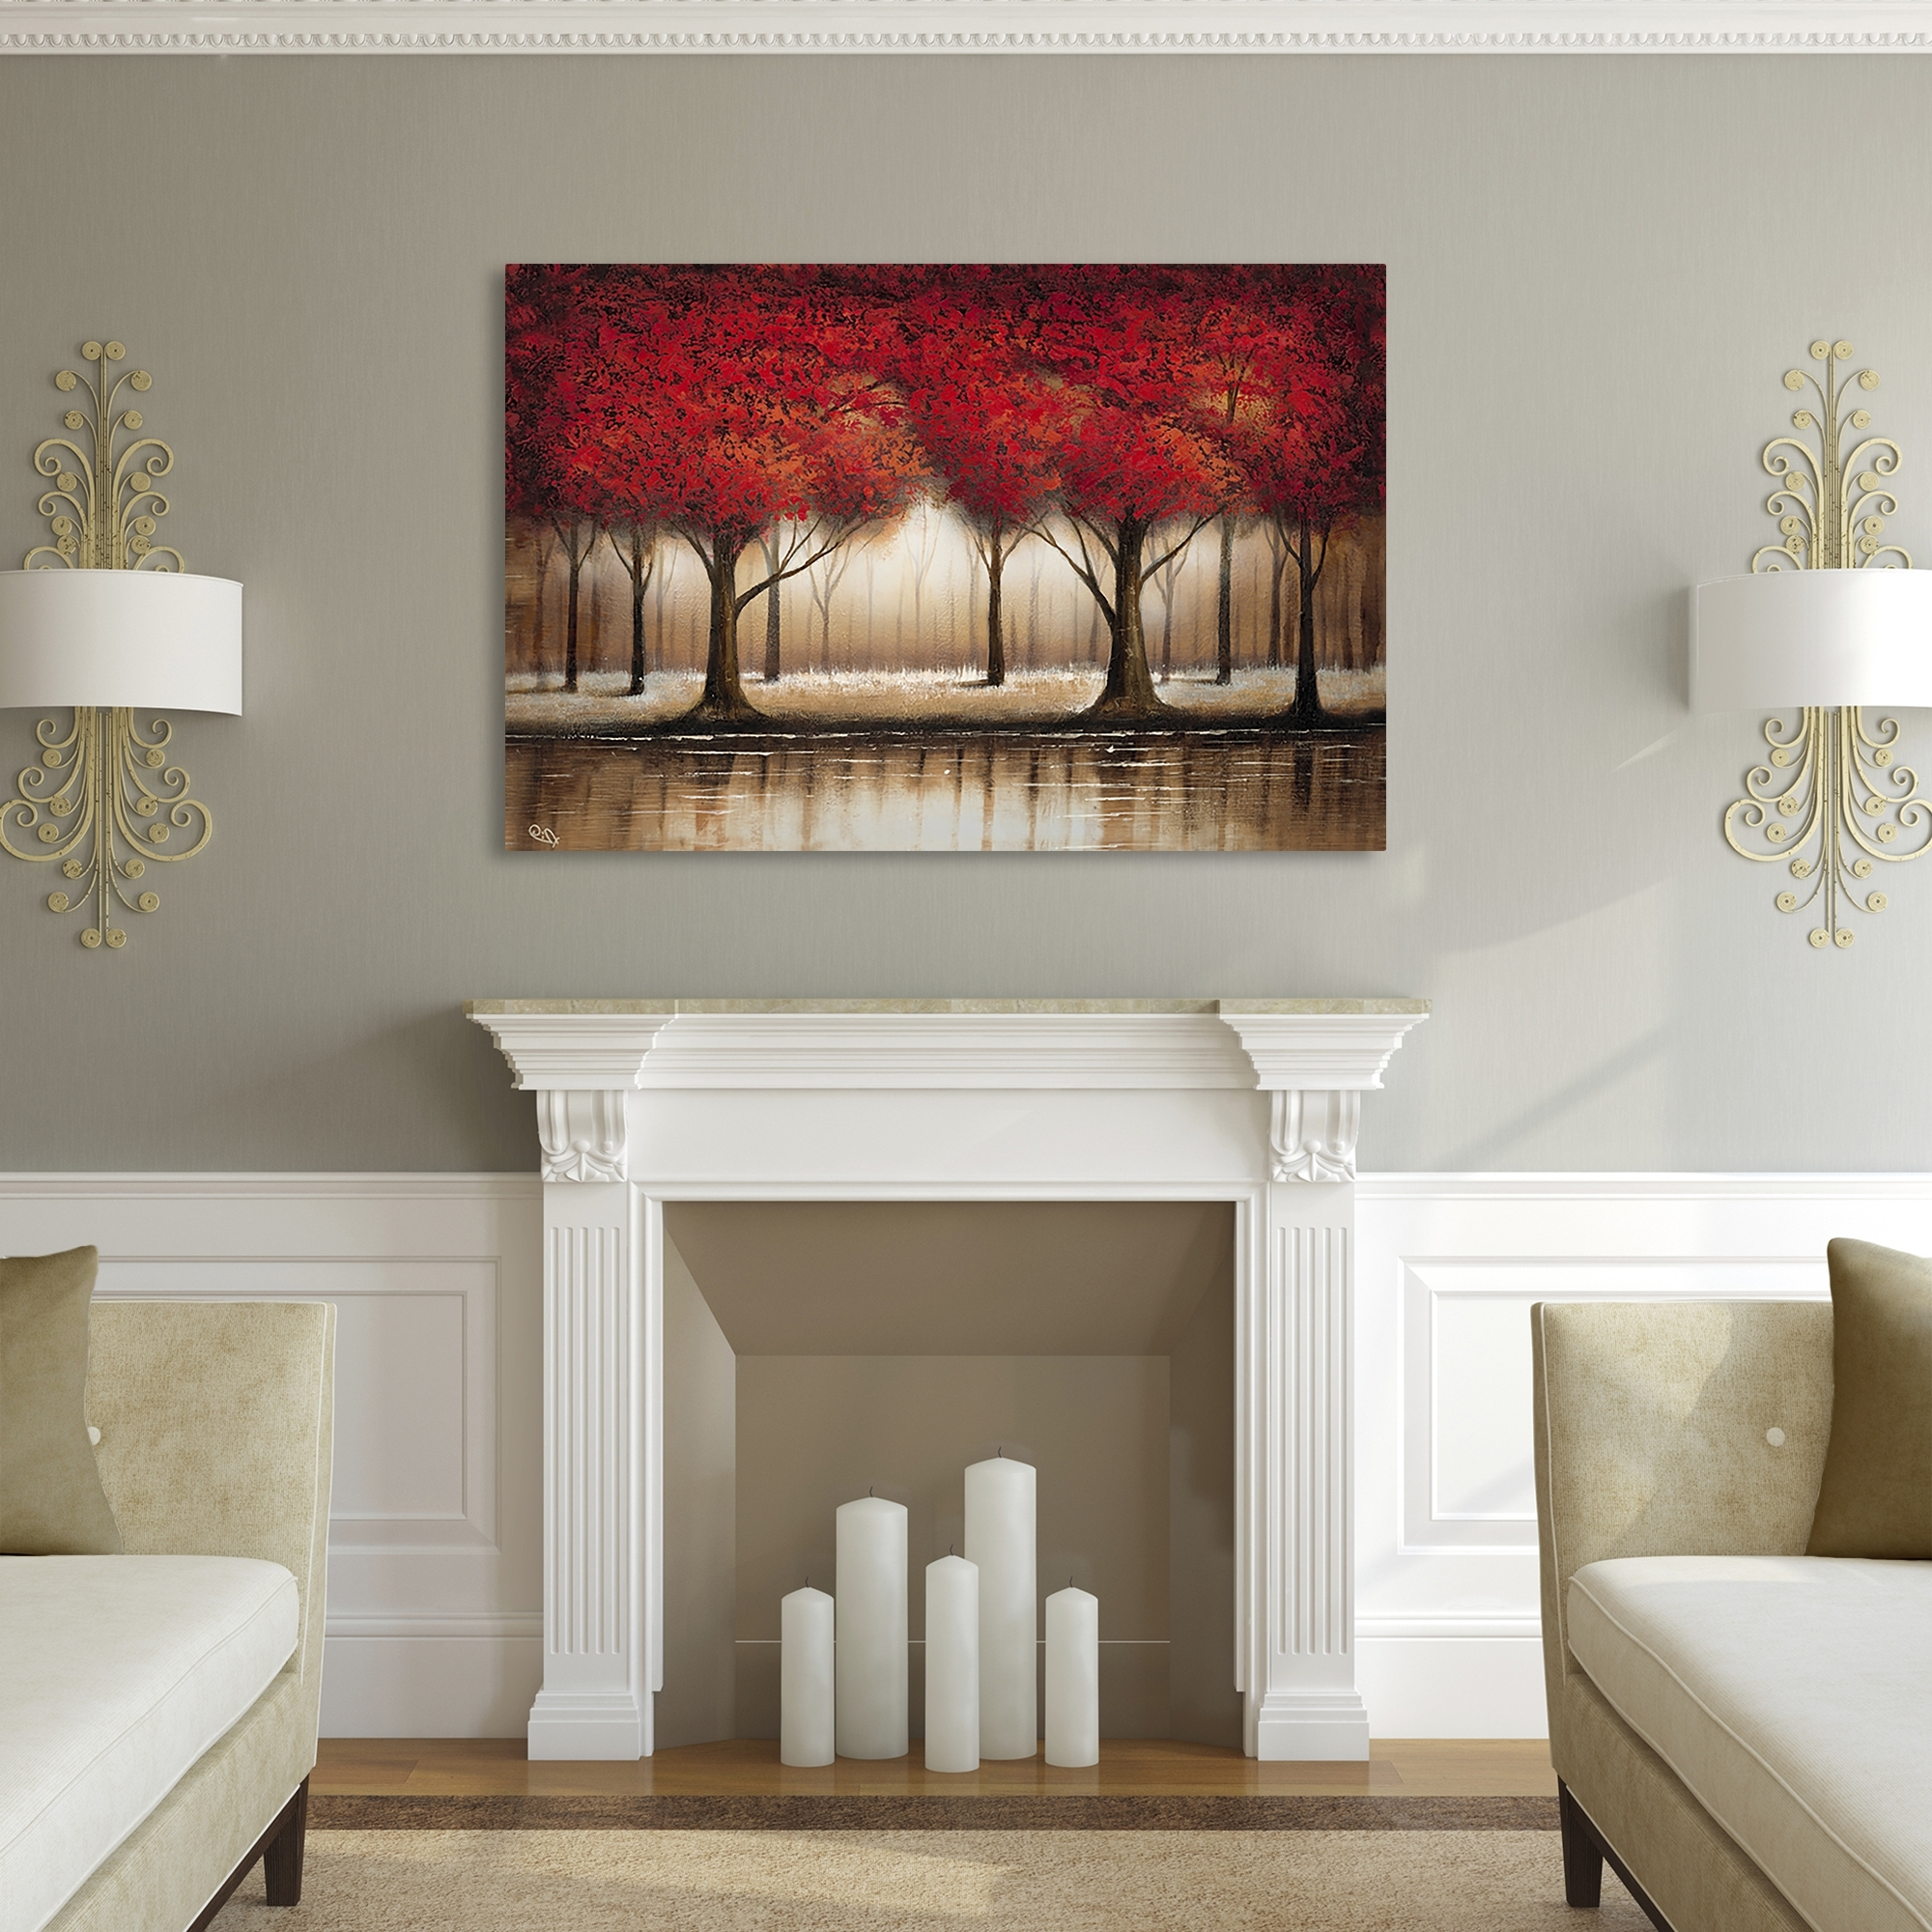 Well Liked Overstock Wall Art With Regard To Shop Gracewood Hollow Rio 'parade Of Red Trees' Canvas Art – Free (View 13 of 15)